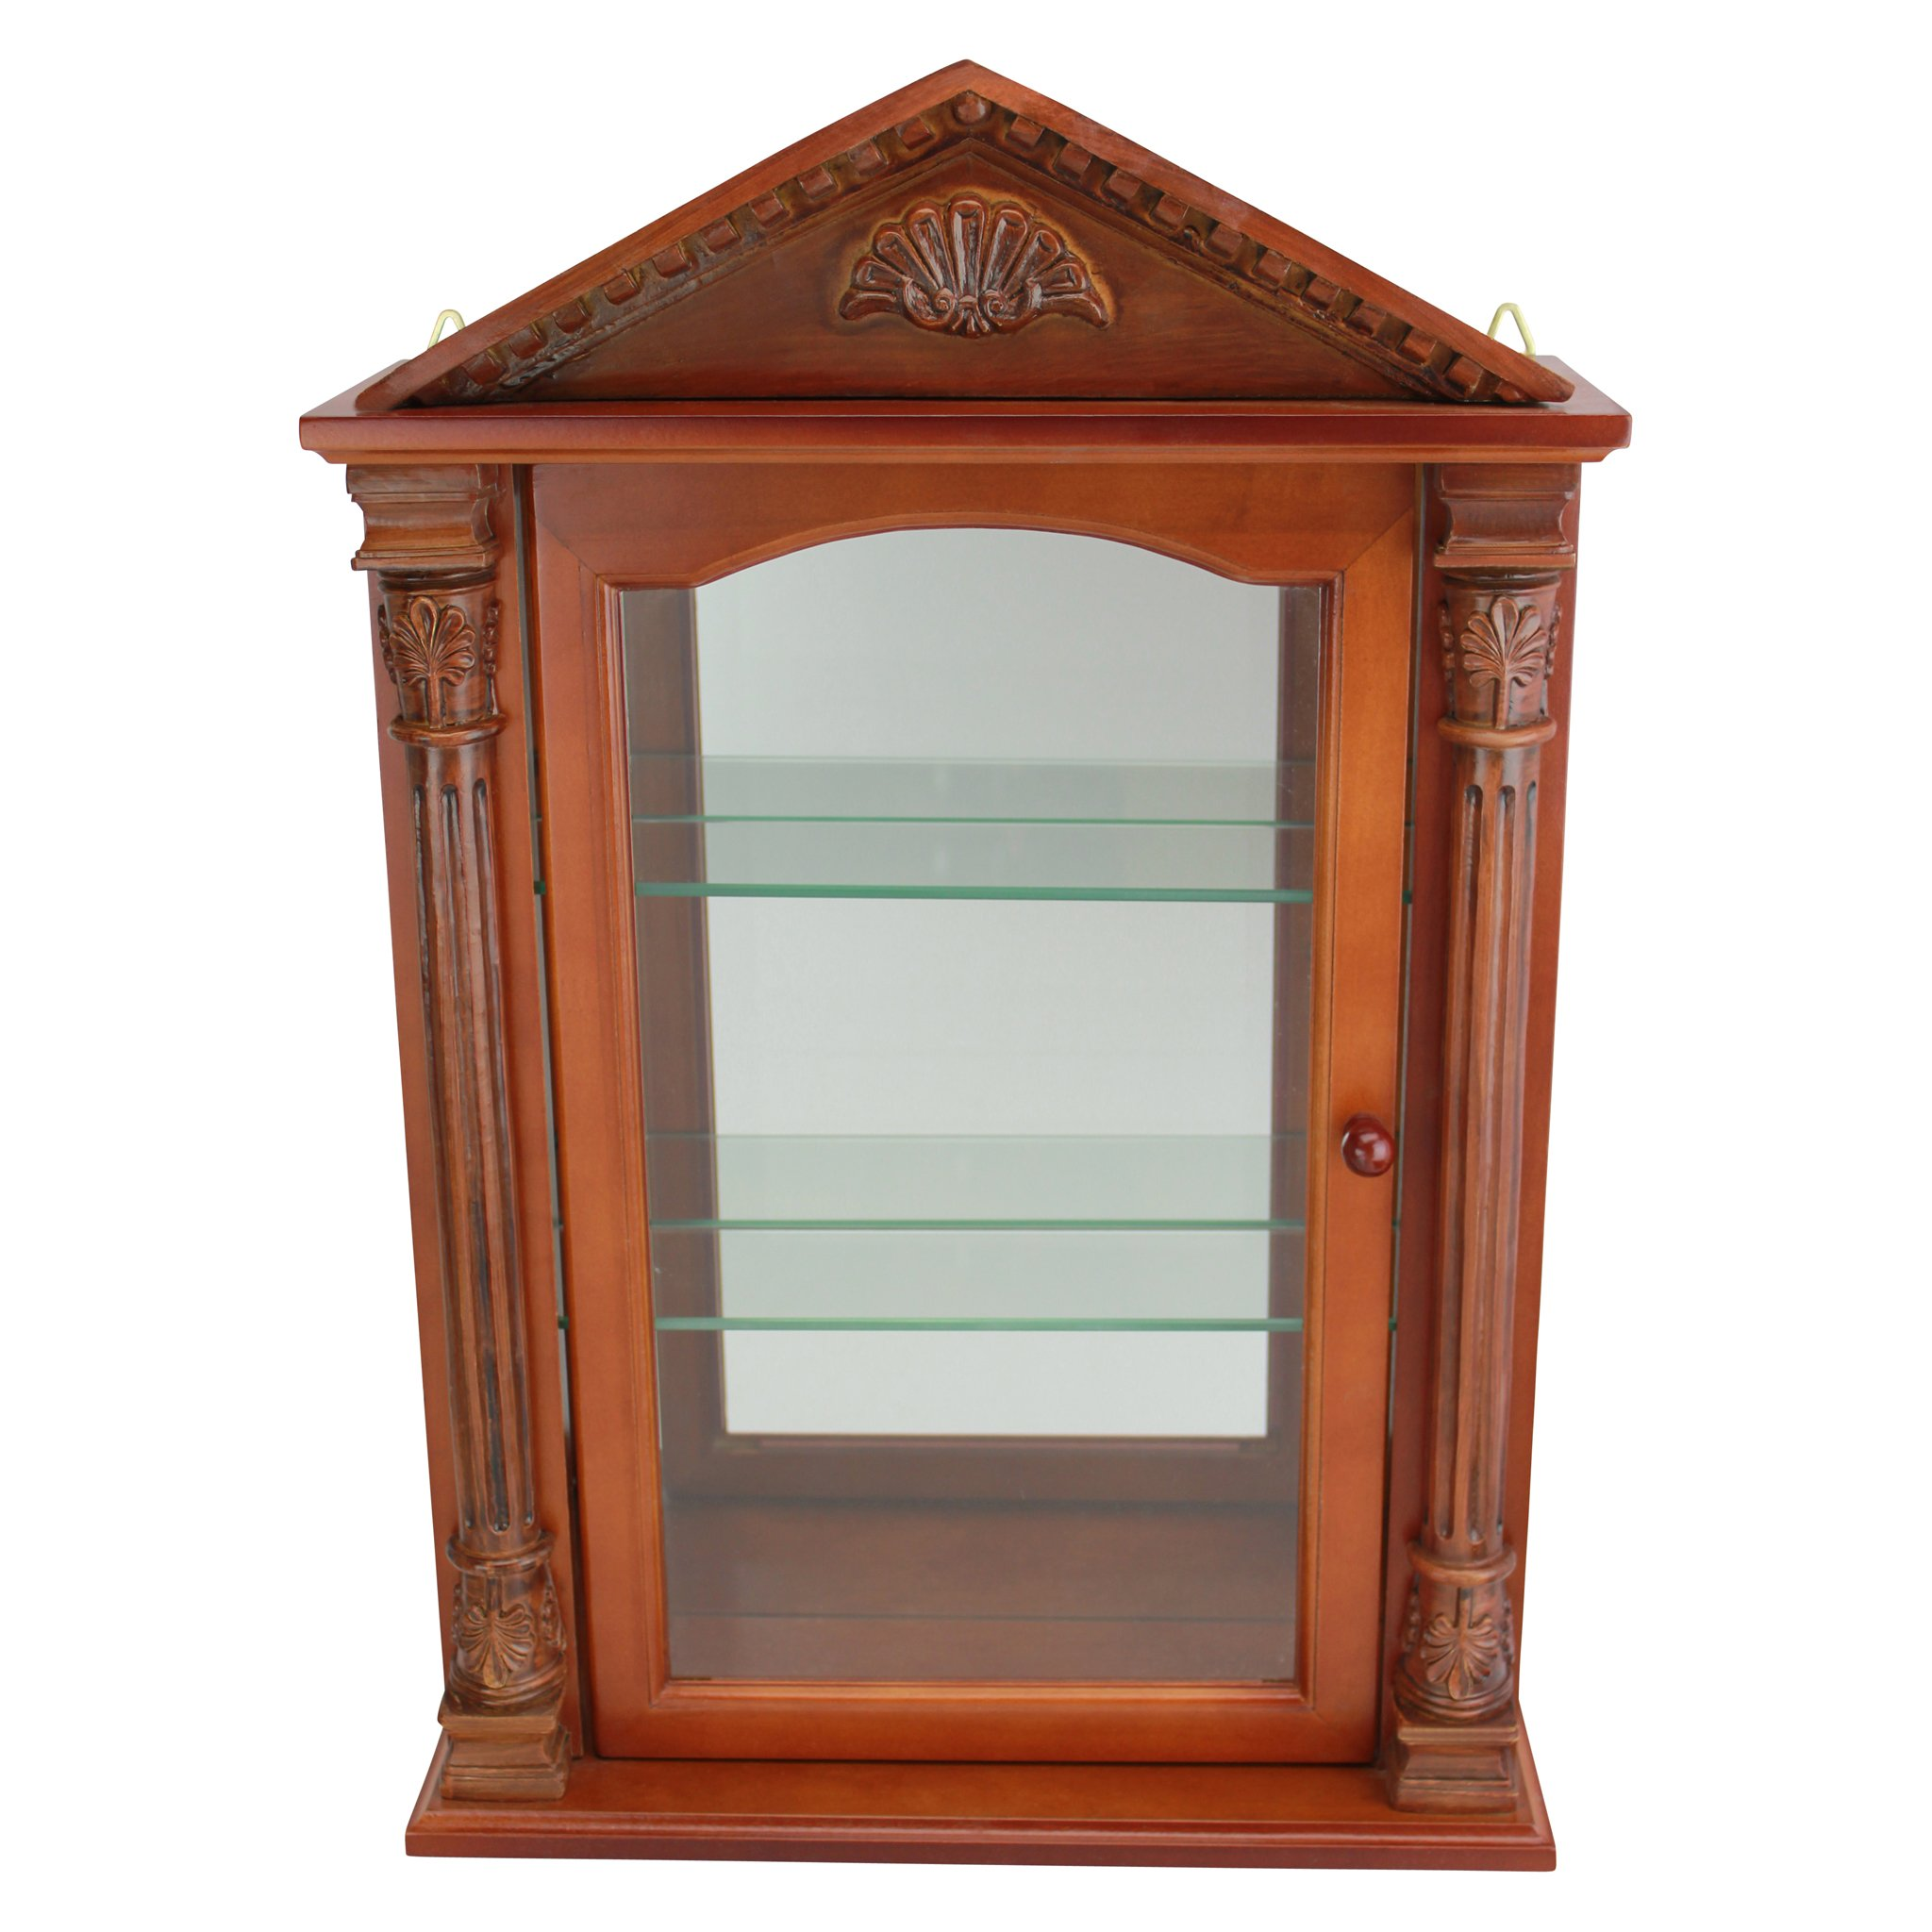 Get Quotations · Design Toscano Glass Curio Cabinets   Essex Hall   Wall  Mounted Curio Cabinet